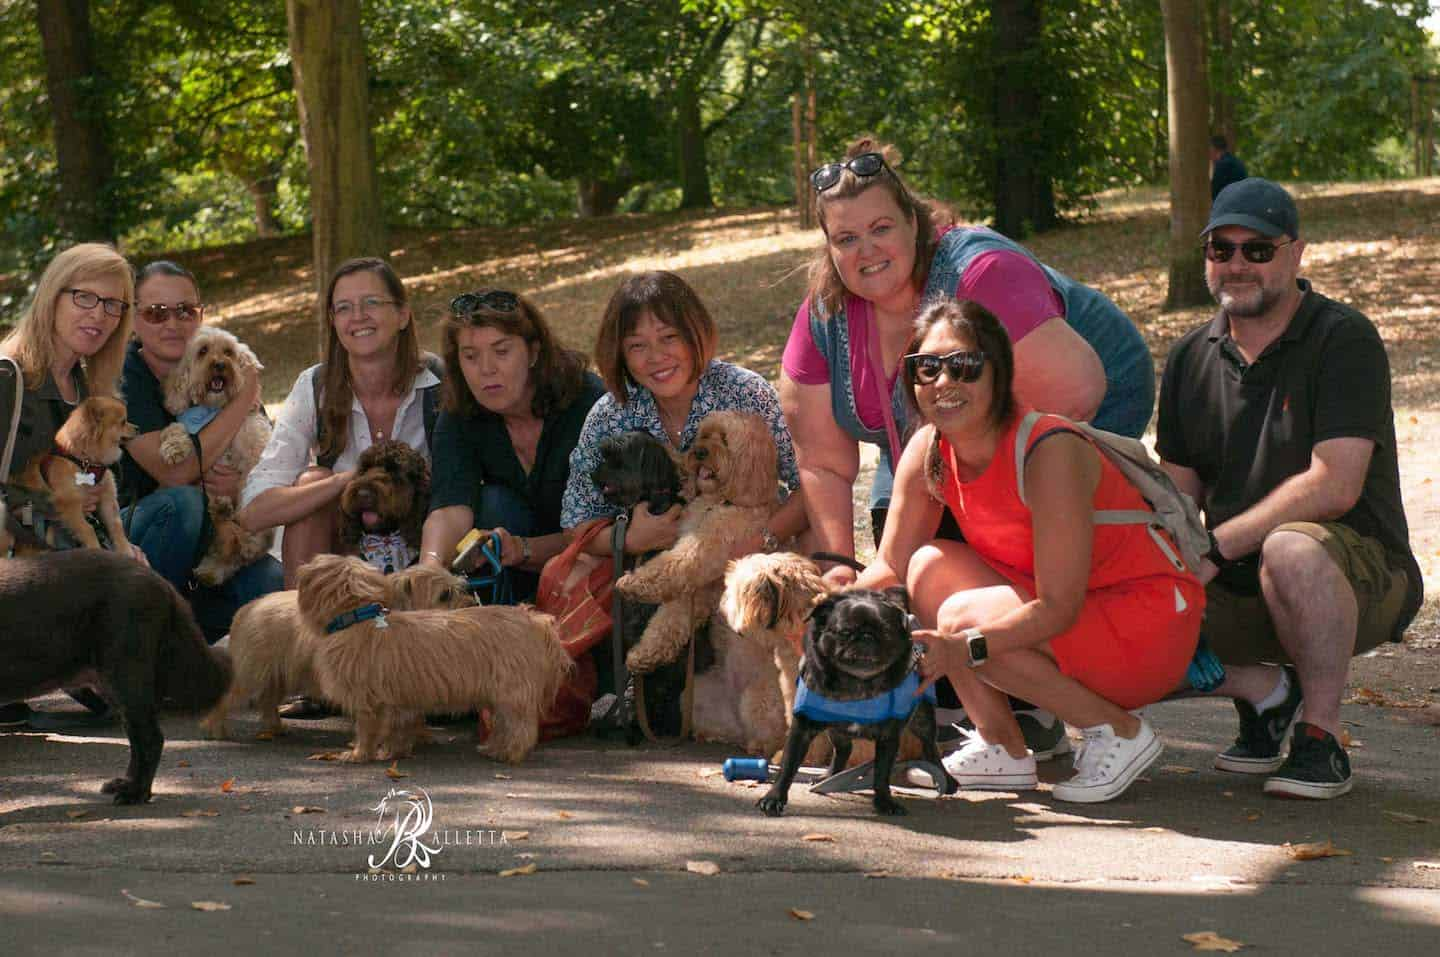 London Dogs Get Social at the London Dogs of Instagram Meetup - Natasha Balletta Photography